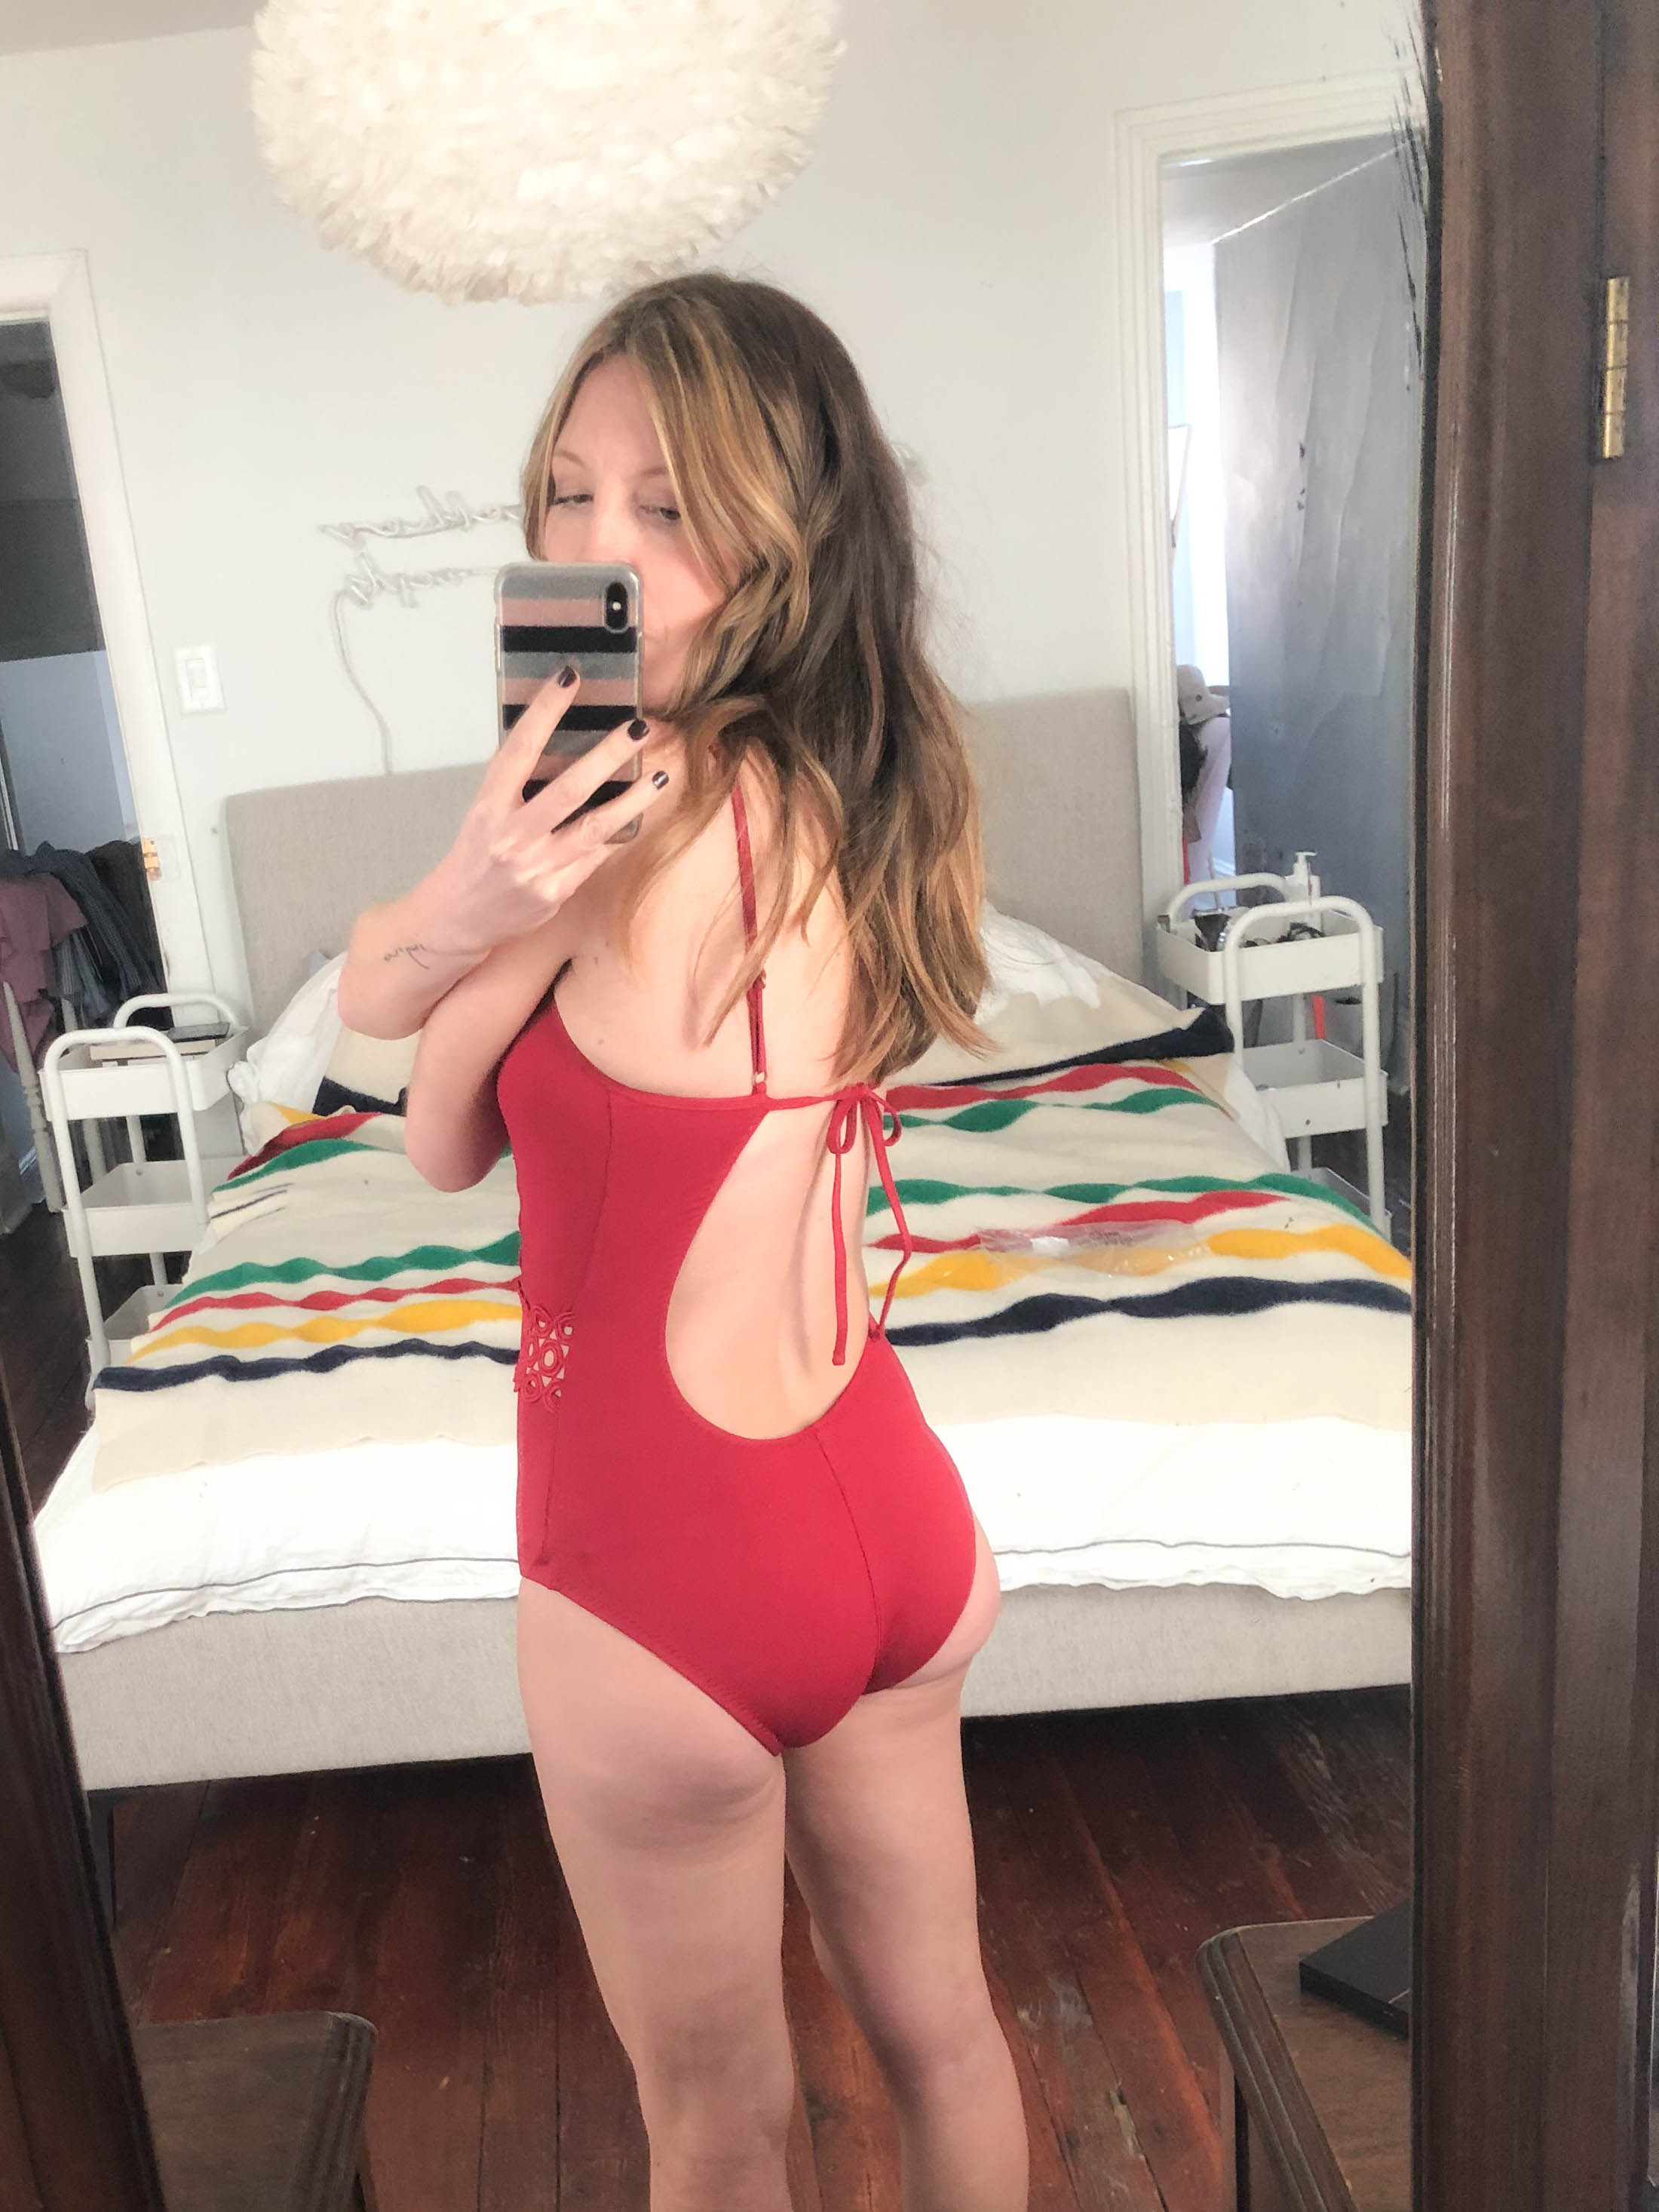 Crochet one-pieces, string bikinis & lingerie-inspired bathing suits — BECCA swimwear gets insanely rave reviews. This huge try-on sesh proves why.